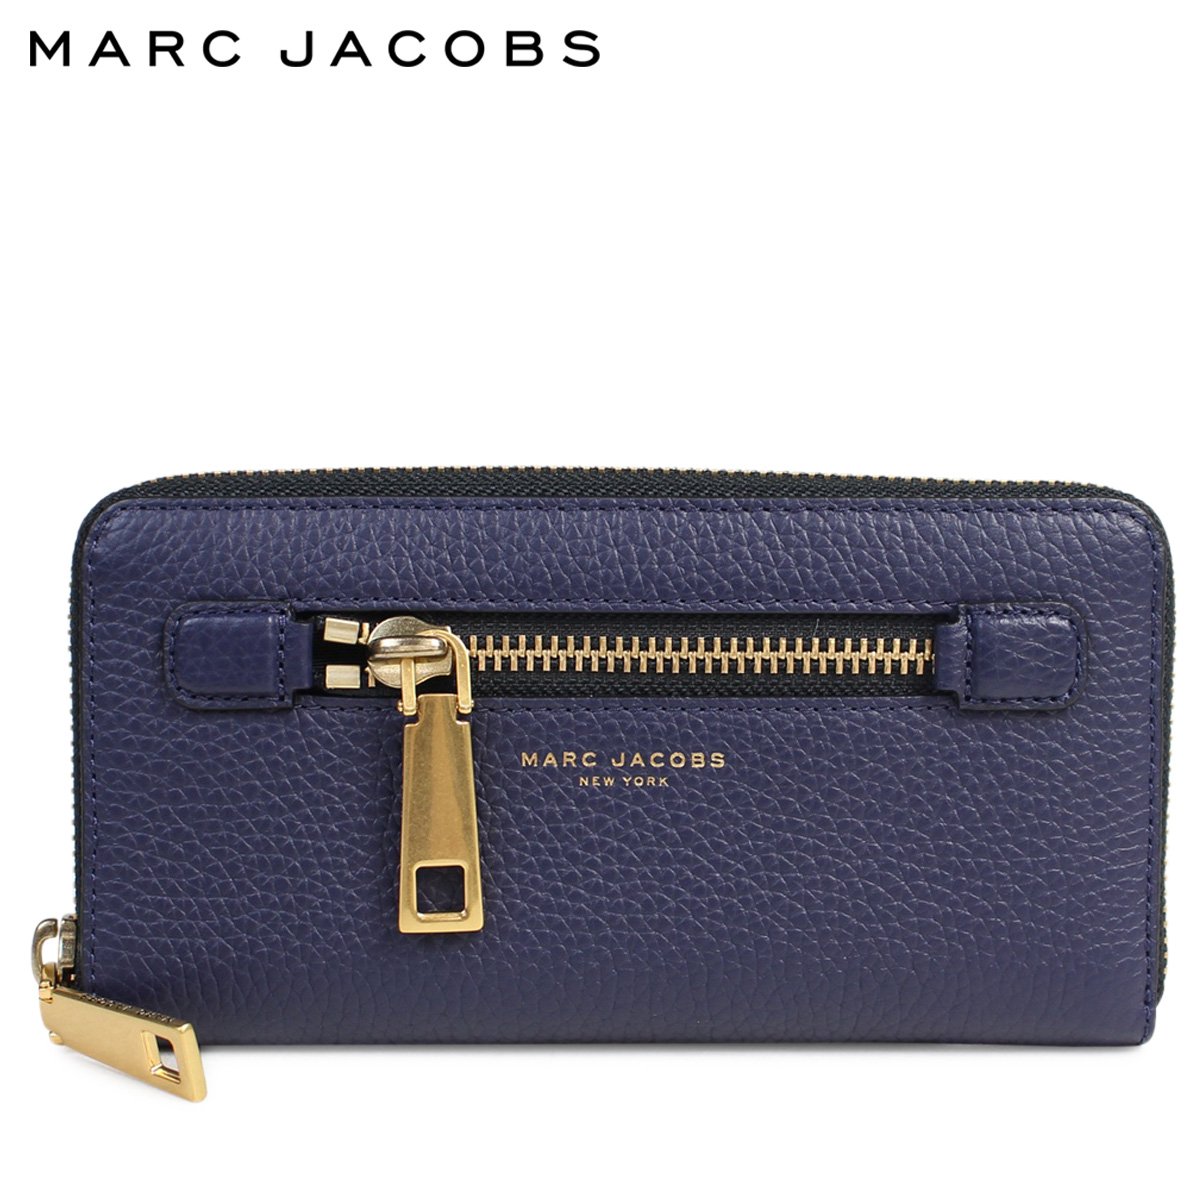 b691faefc500 Mark Jacobs MARC JACOBS wallet long wallet round fastener Lady s M0008449  GOTHAM STANDARD CONTINENTAL WALLET navy